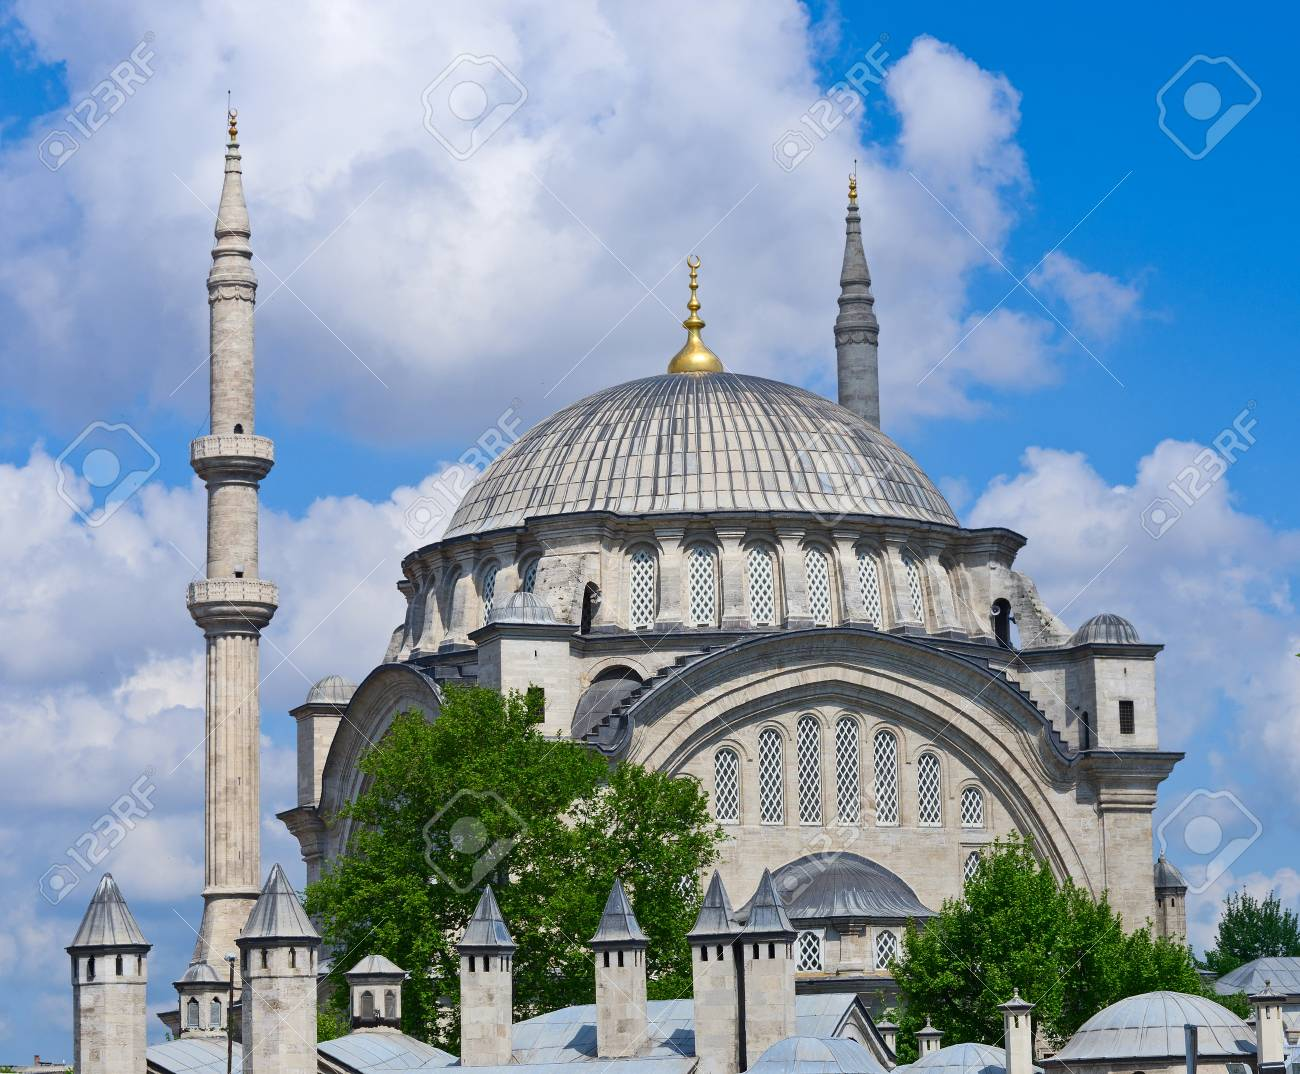 The Nuruosmaniye Mosque Is An Ottoman Mosque In Fatih District